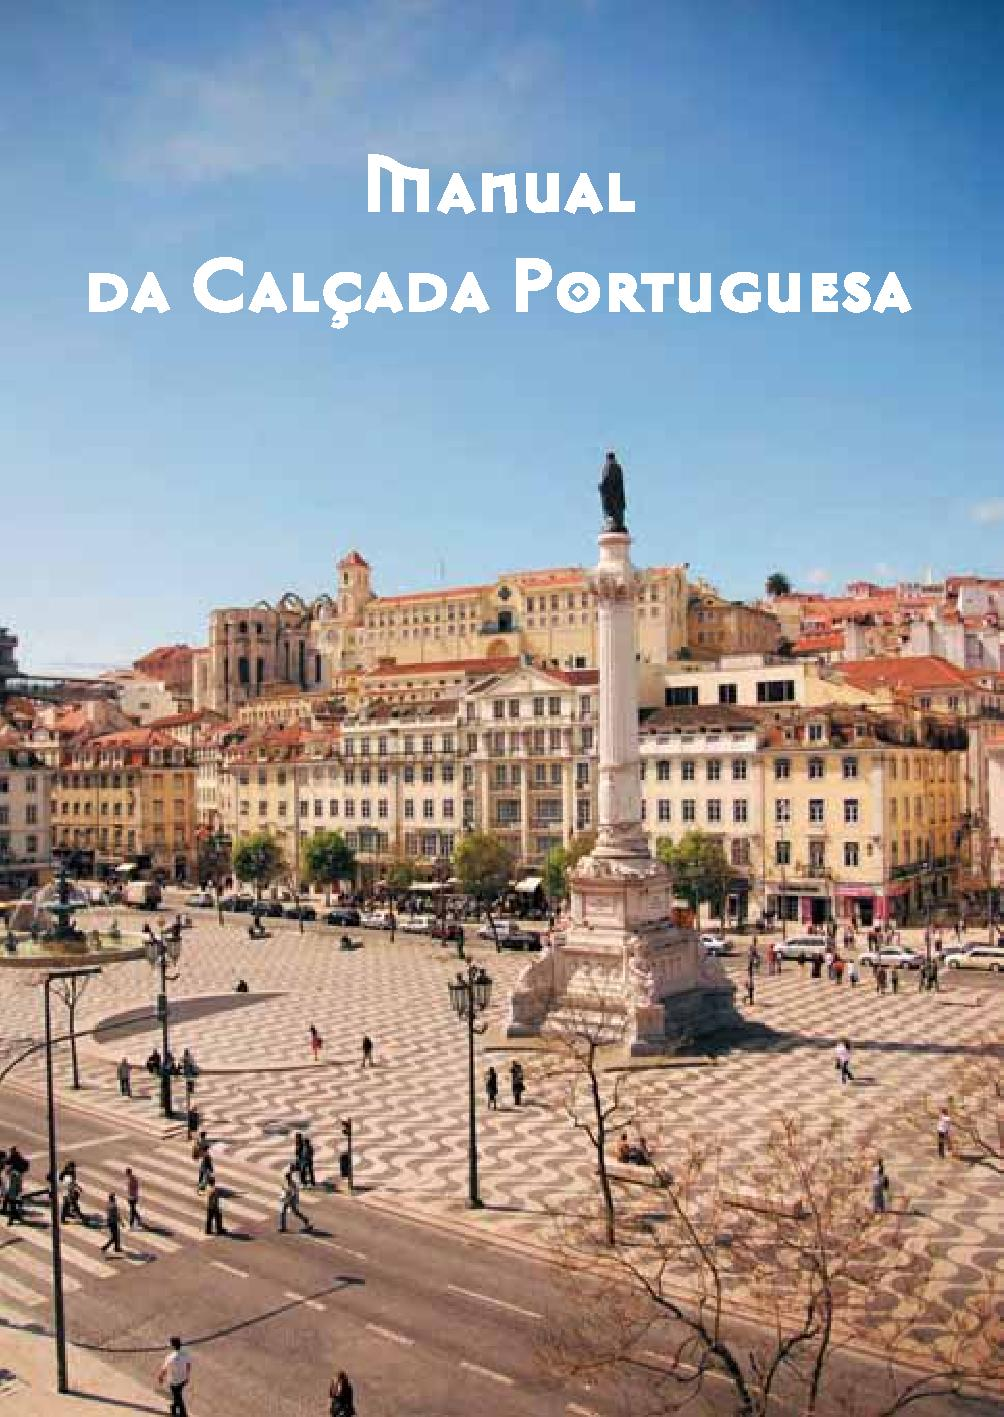 Manual da Calçada Portuguesa (DG Energia/2009)